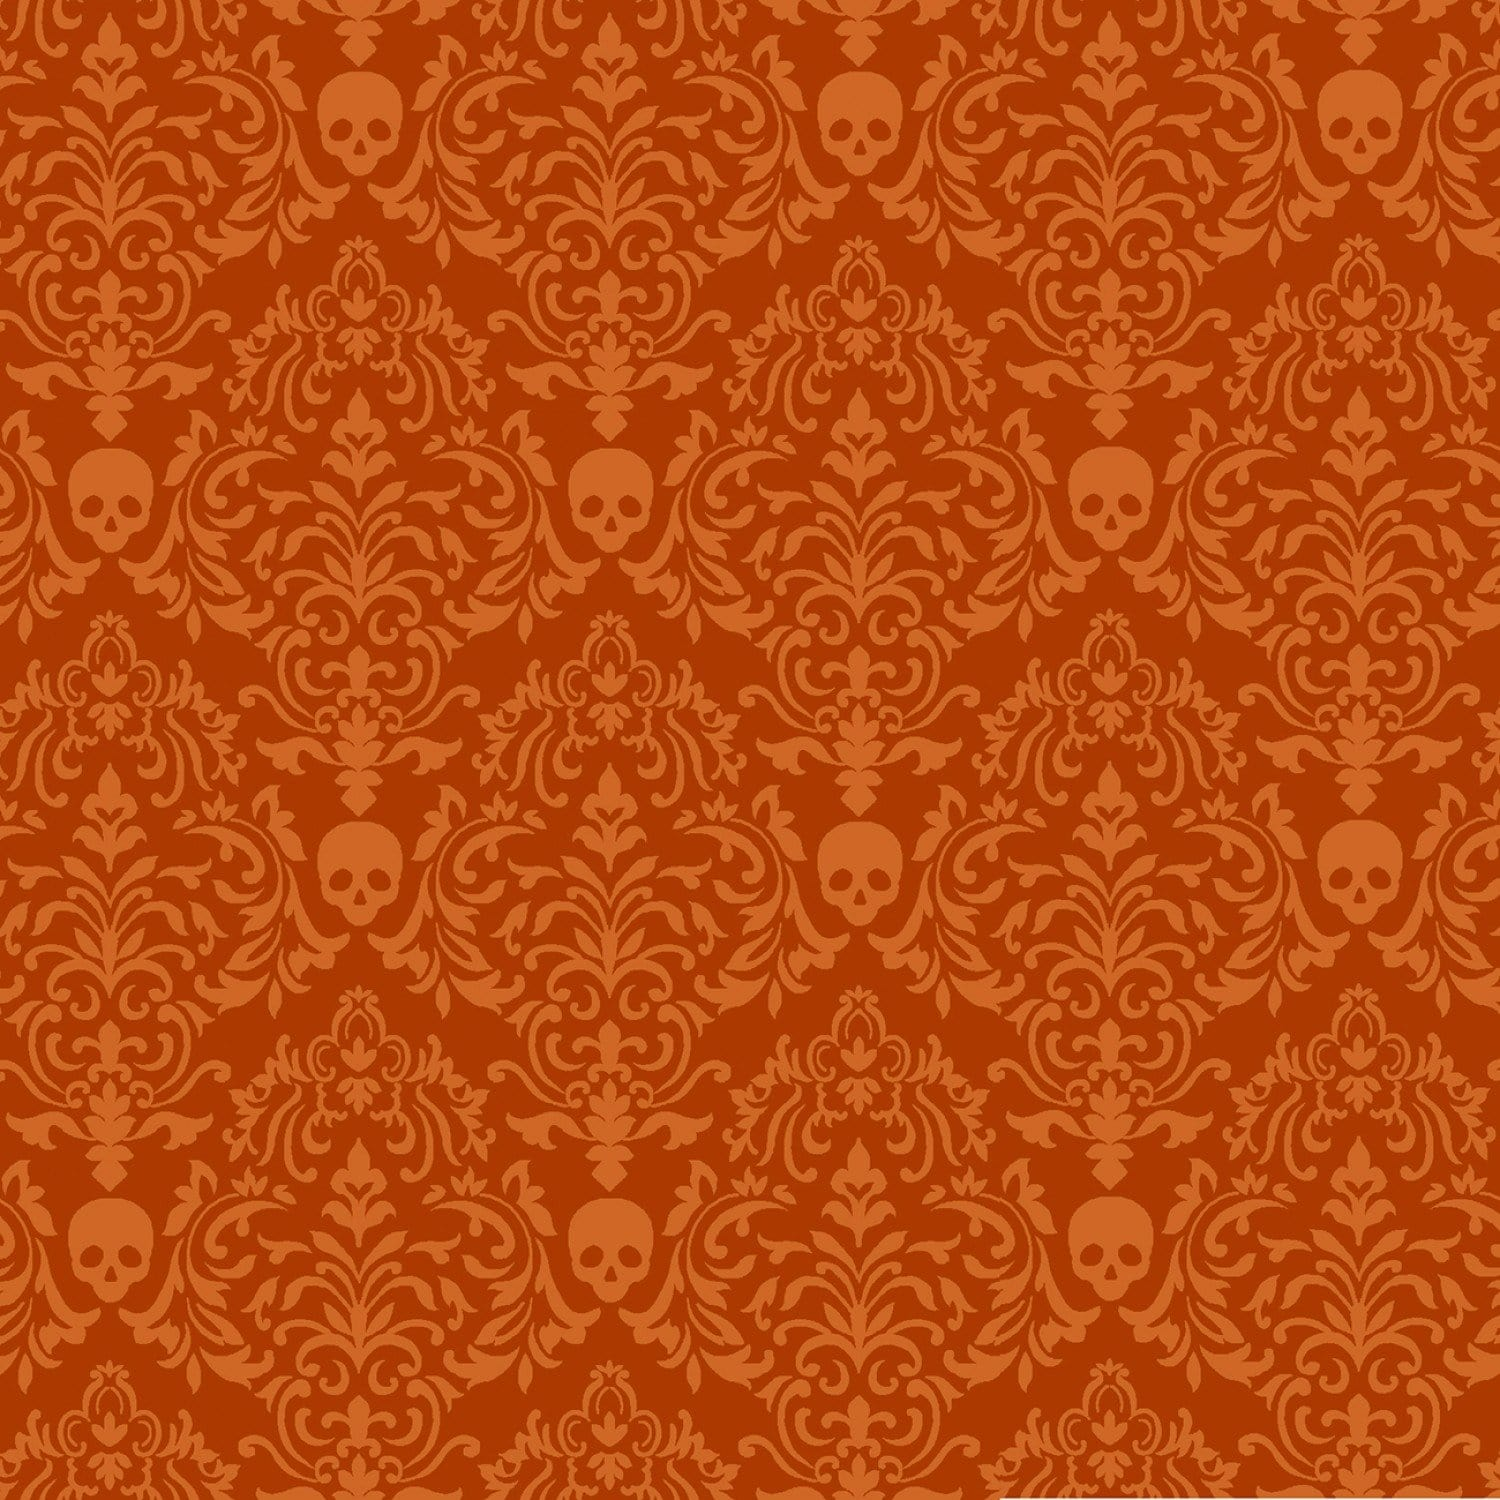 Orange Spooky Small Damask - 57205-33 - Spooky Nights - Studio E - Halloween Fabrics